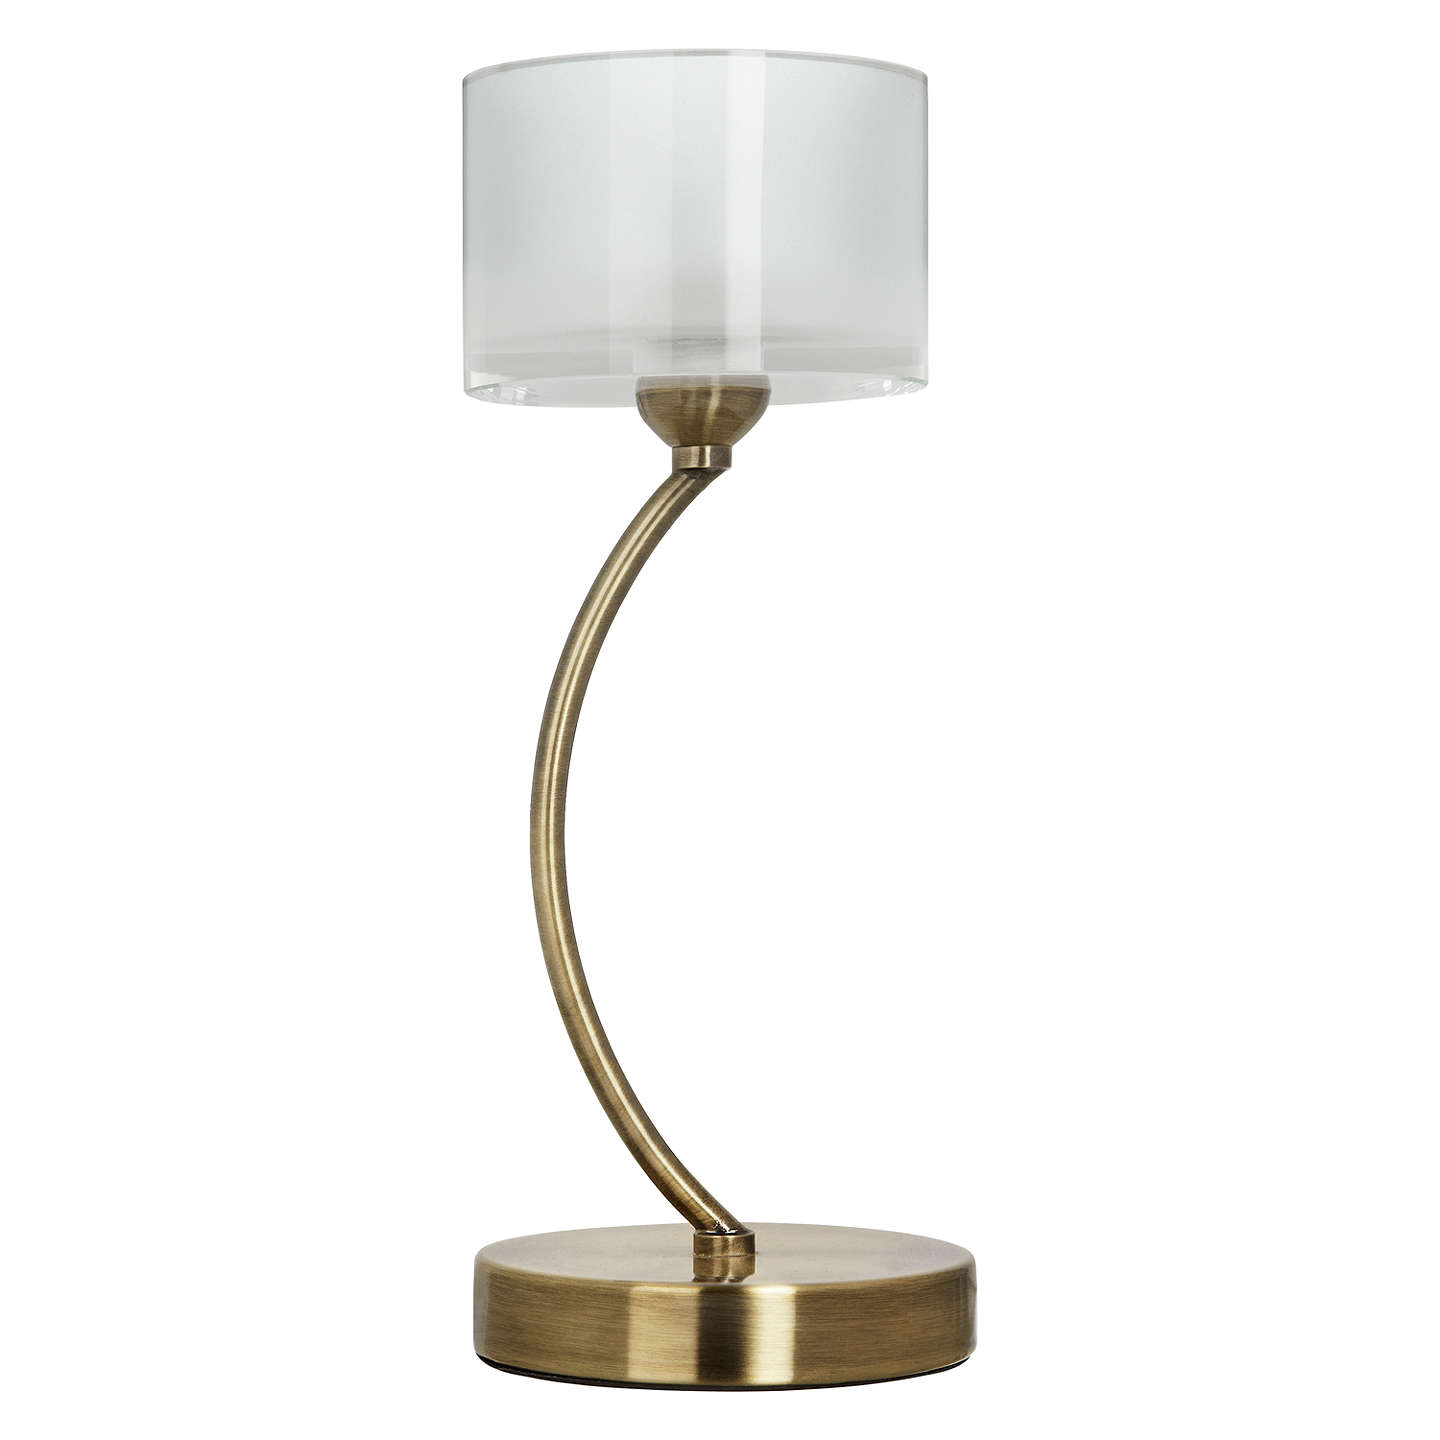 John lewis paige 3 stage touch table lamp at john lewis buyjohn lewis paige 3 stage touch table lamp antique brass online at johnlewis aloadofball Image collections